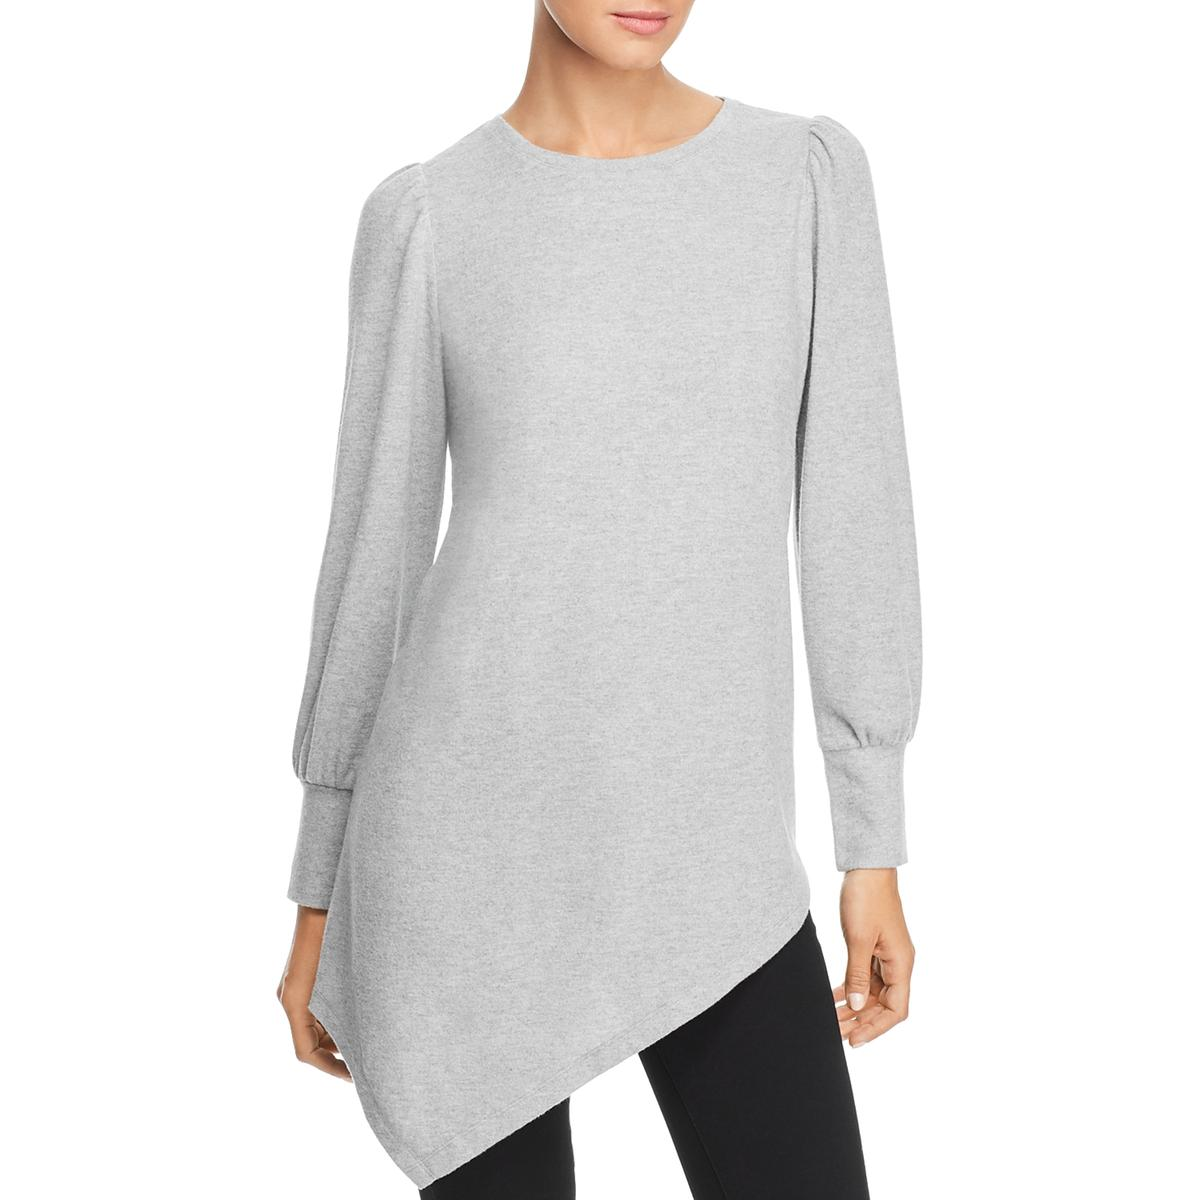 Vince Camuto Womens Asymmetric Long Sleeves Top